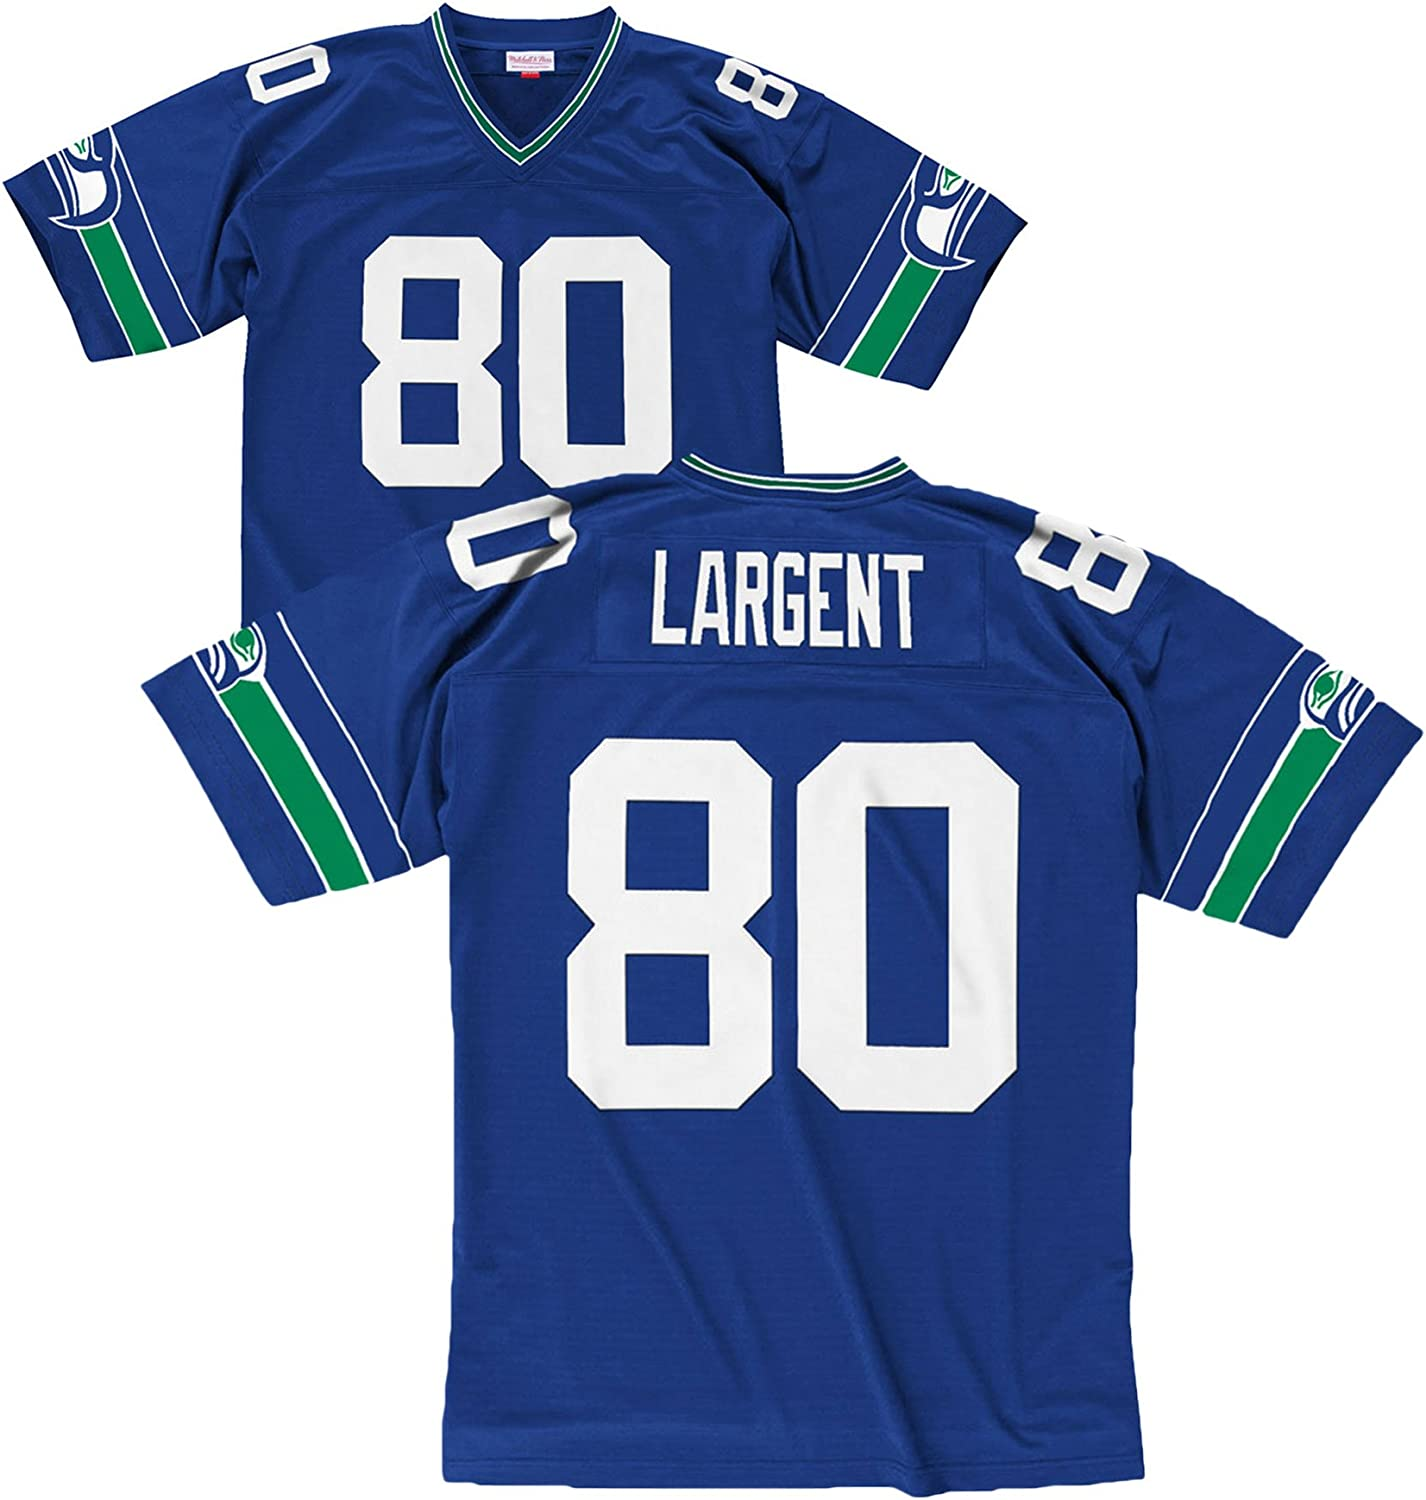 Mitchell & Ness Steve Largent Blue Seattle Seahawks Throwback Jersey